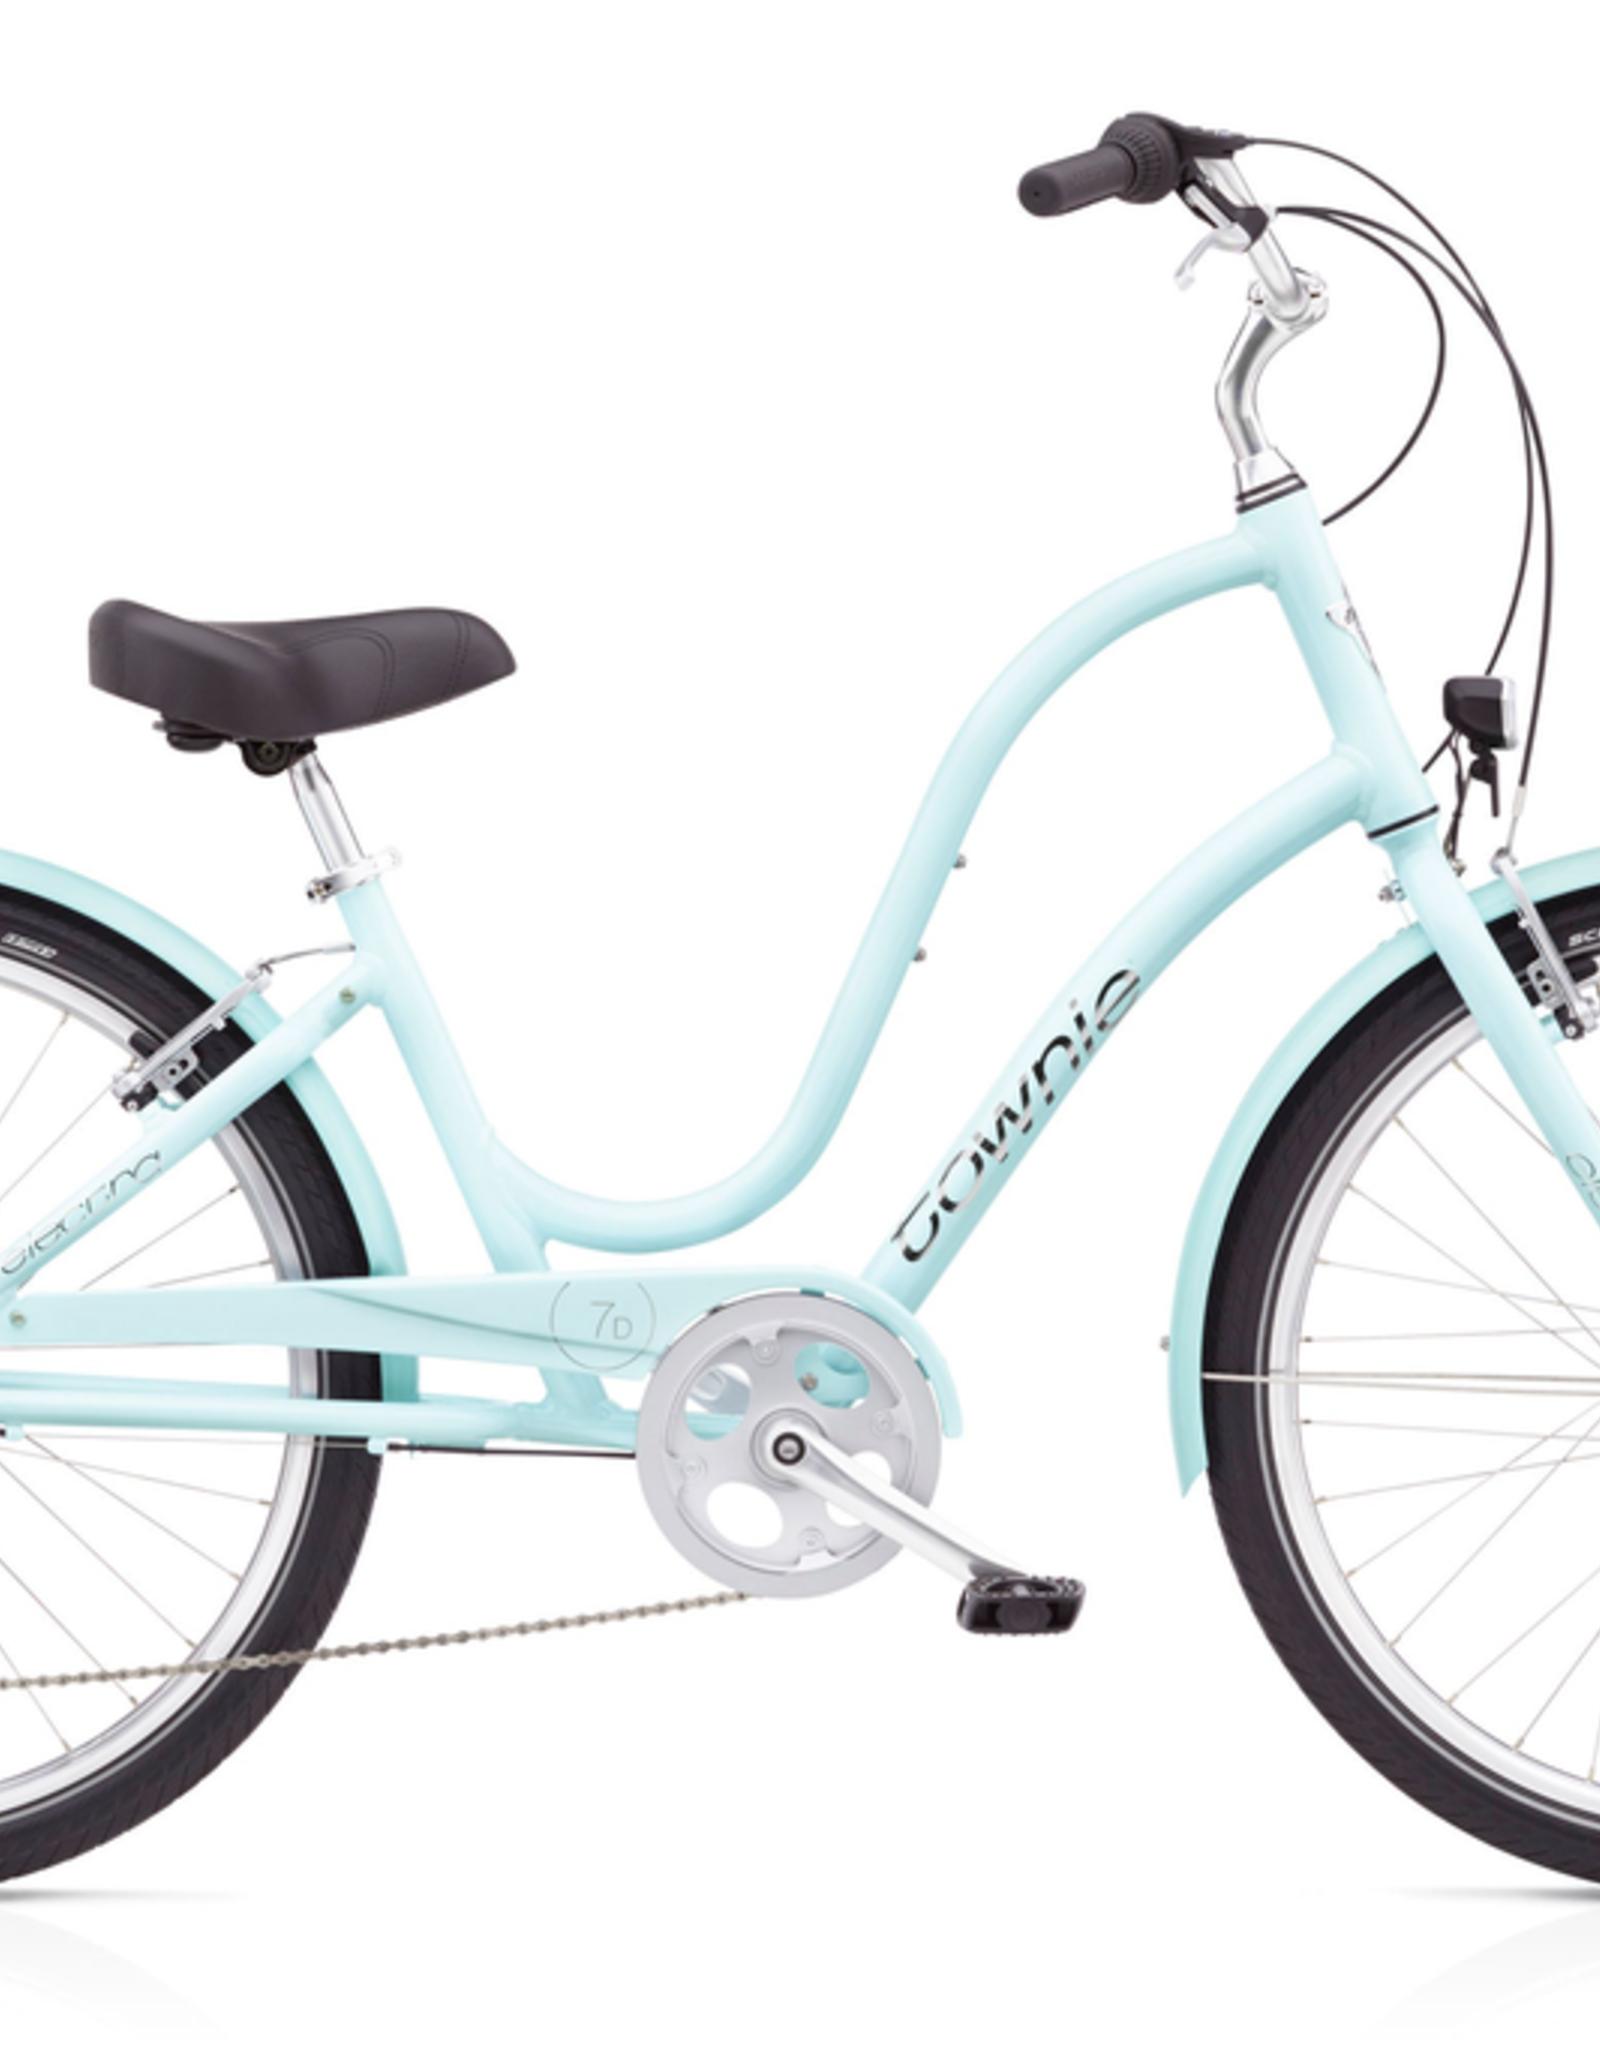 "Electra Electra Townie Original 7D EQ, 24"", Ladies', Arctic Blue"